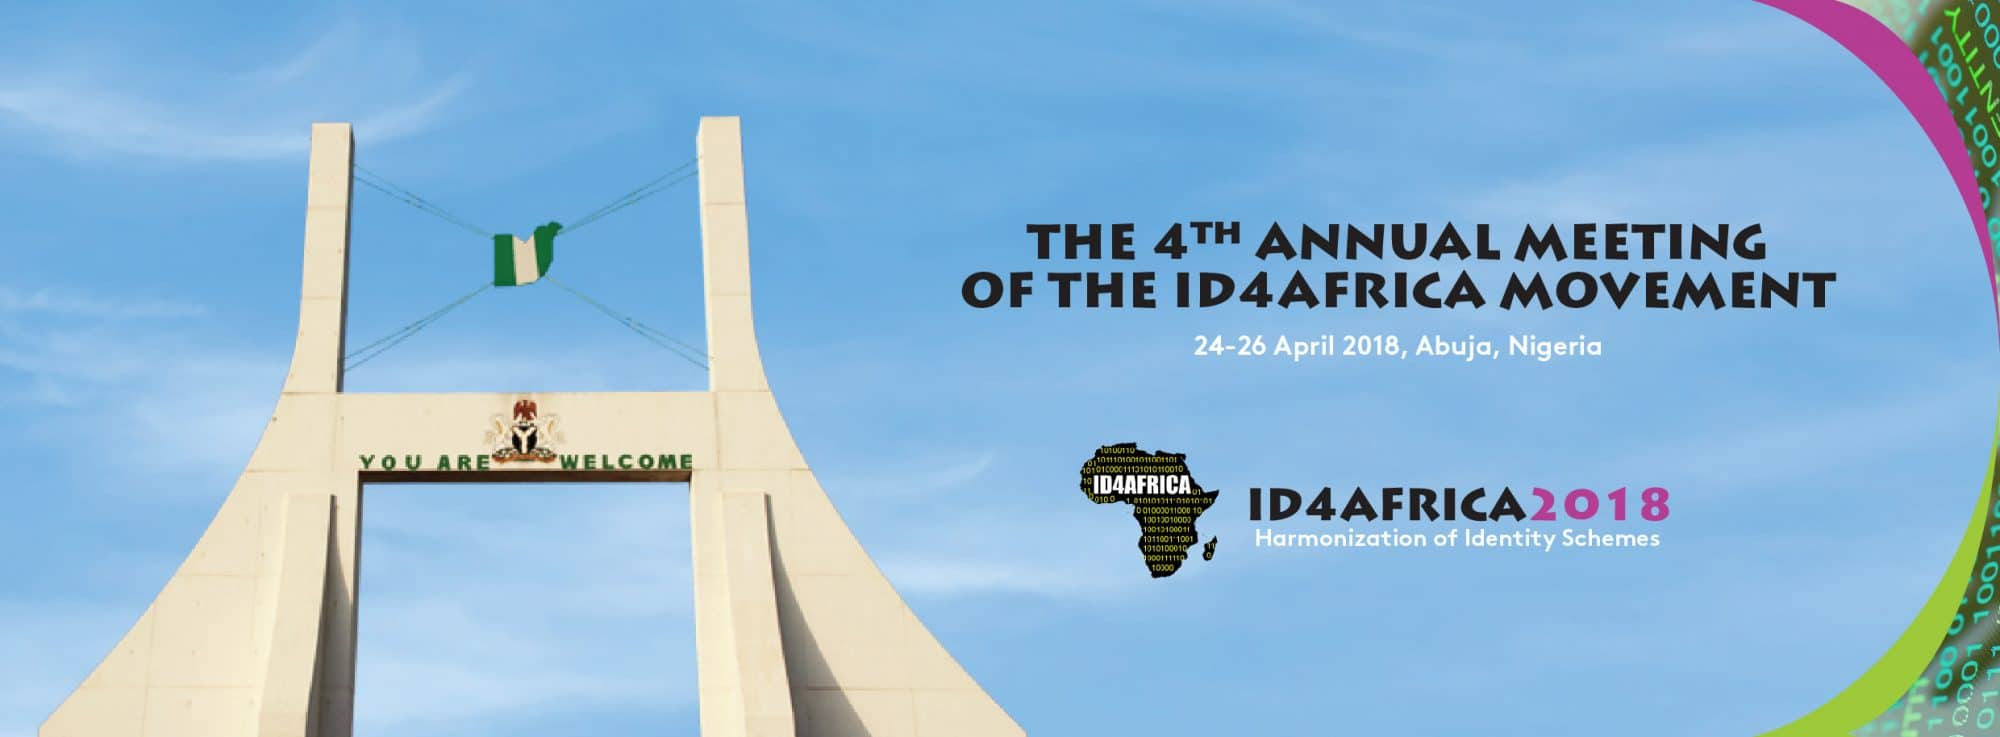 The 4th annual meeting of the ID4Africa movement